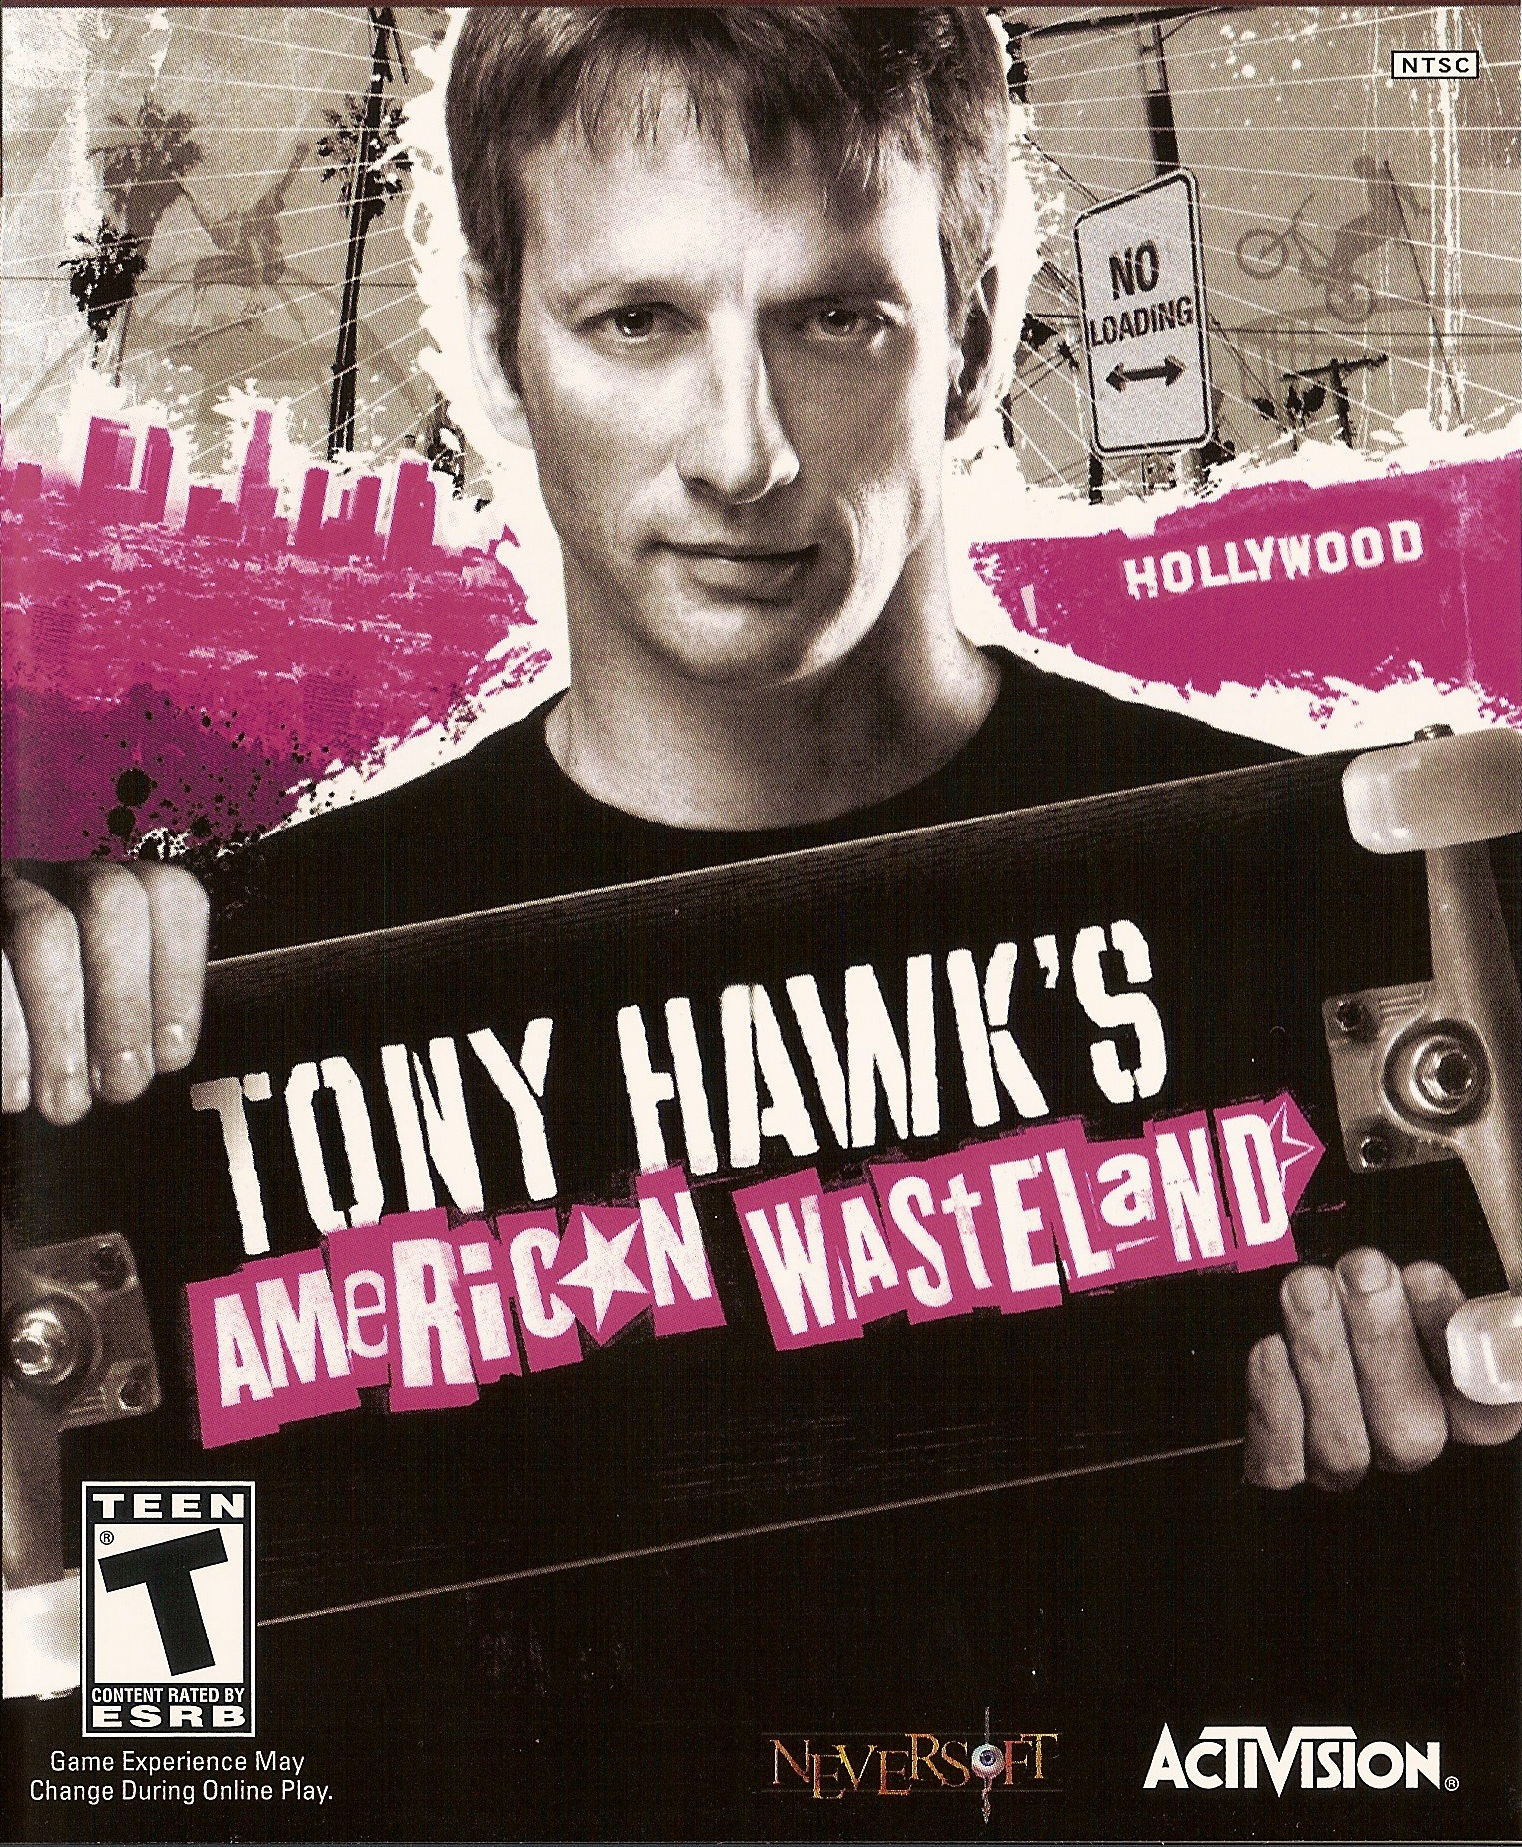 Tony Hawk Tuesdays – A Wasted Opportunity